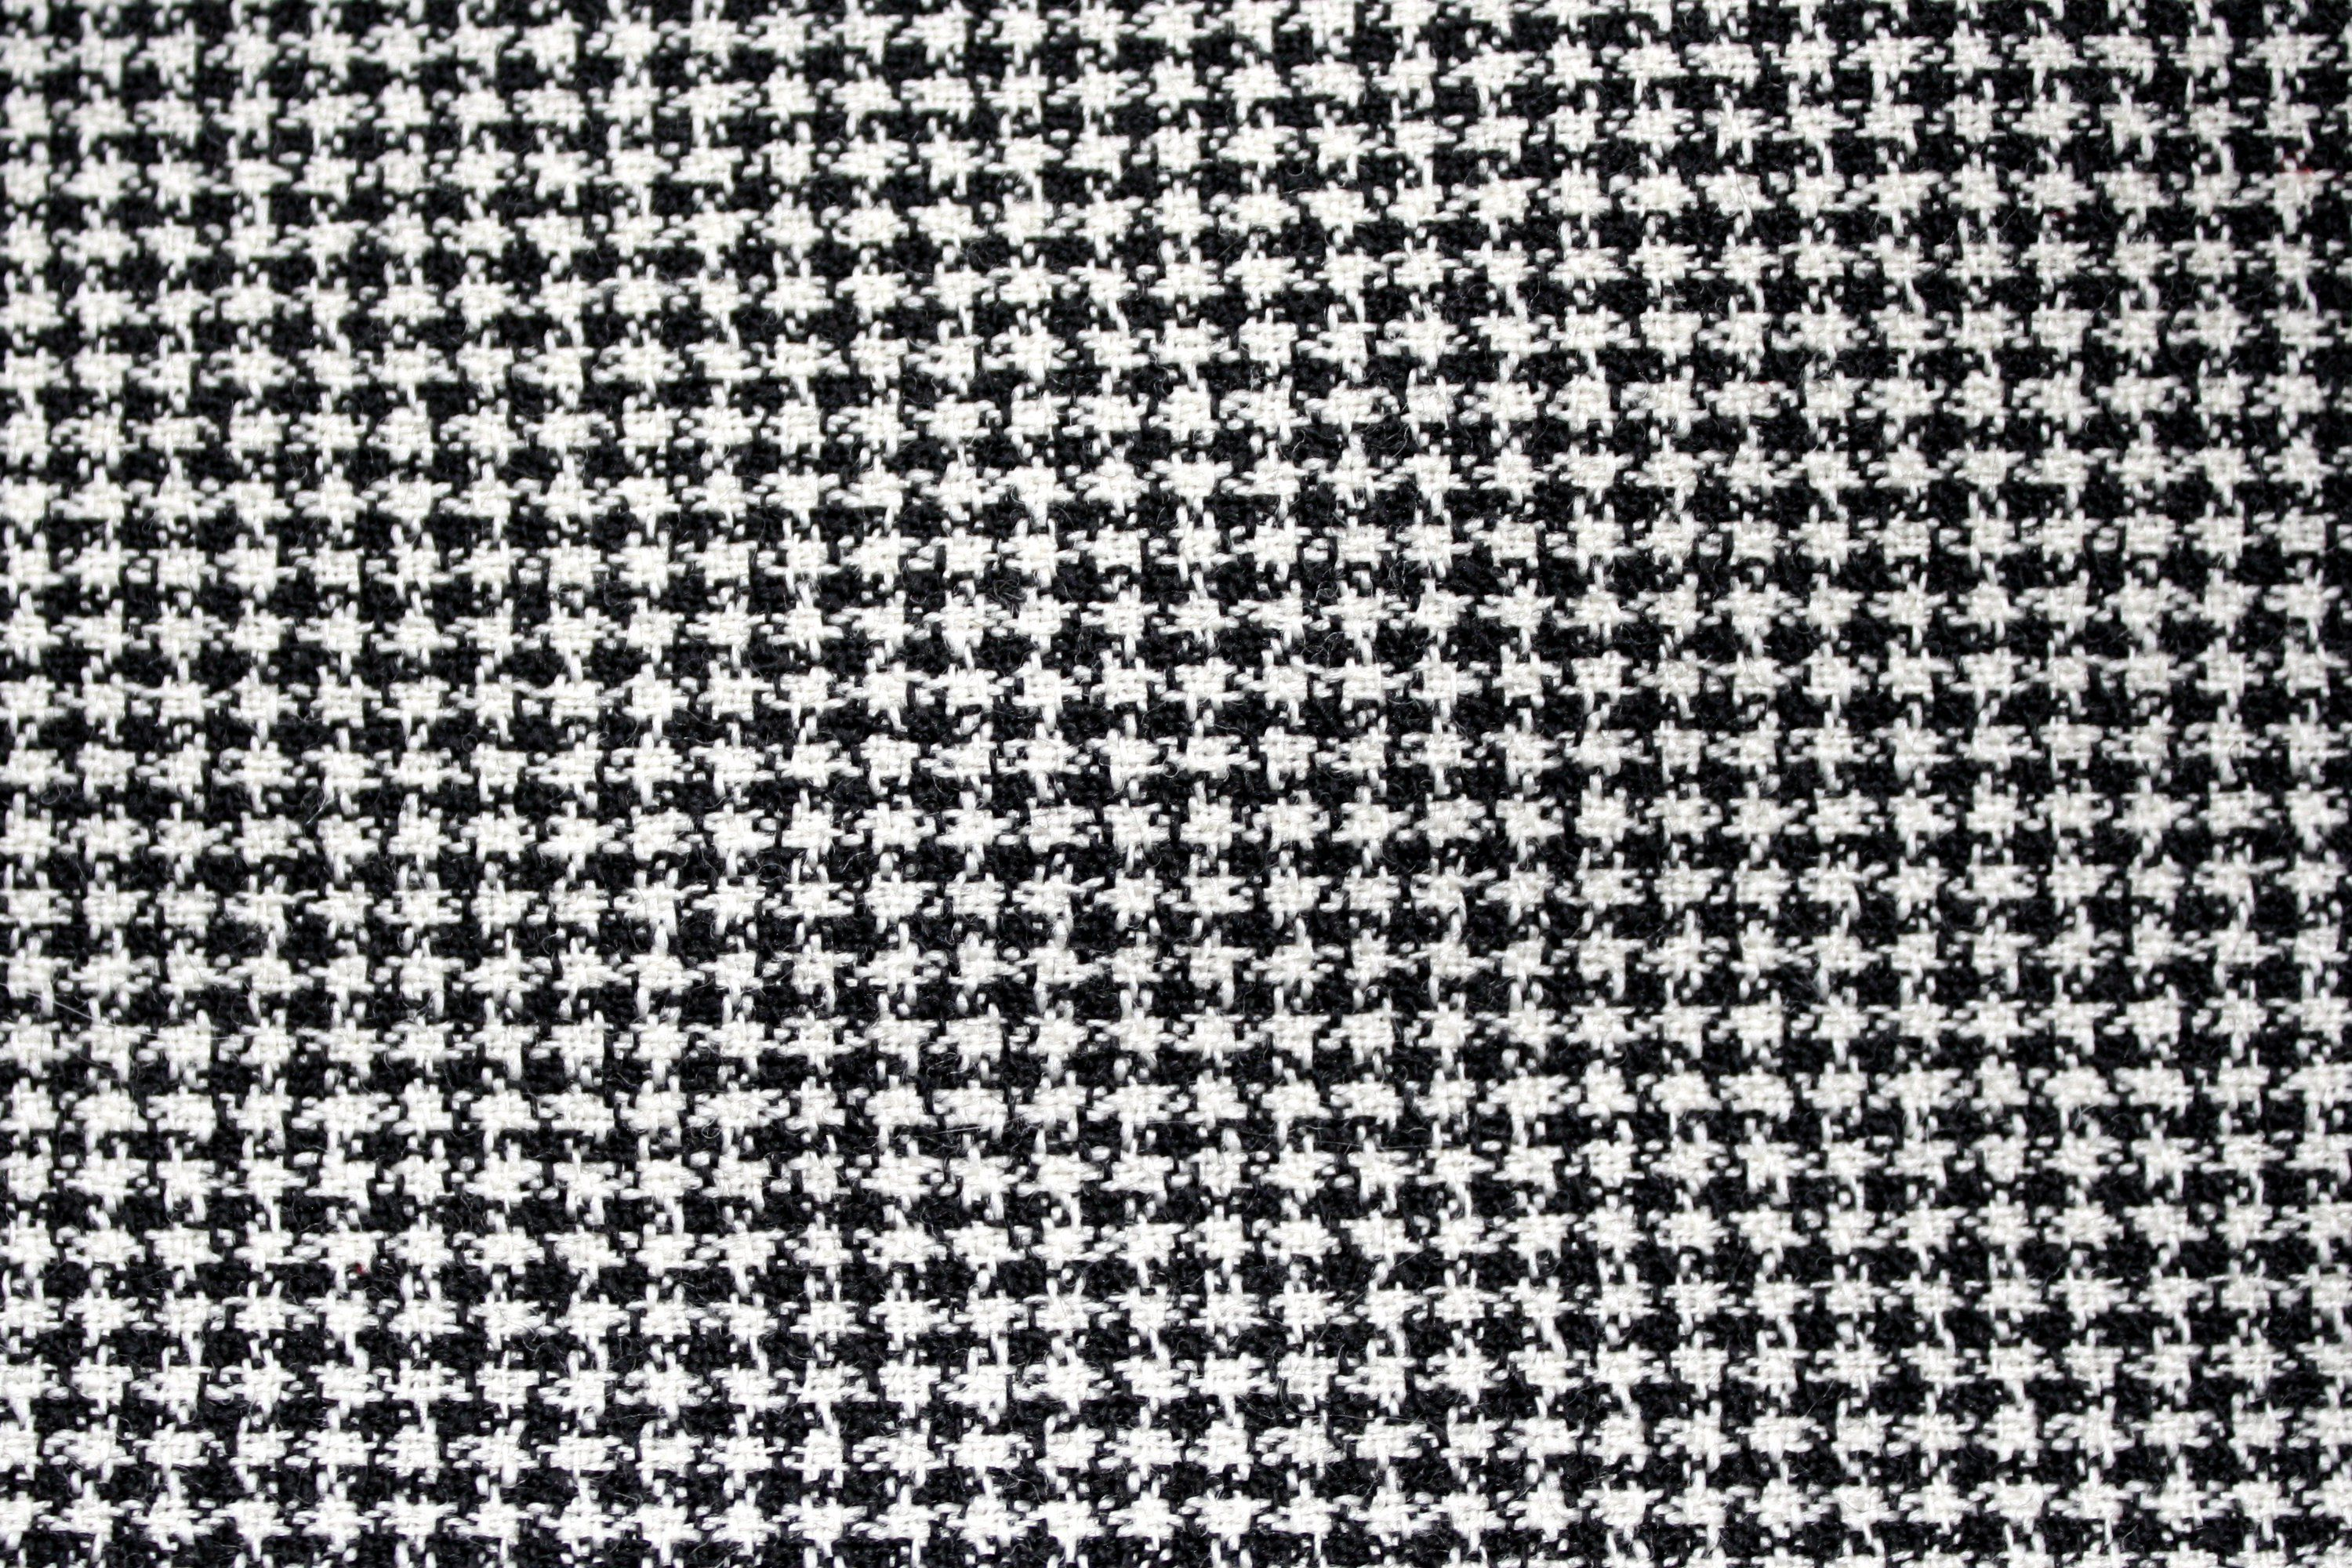 White Black And Tweed Pattern Texture Free High